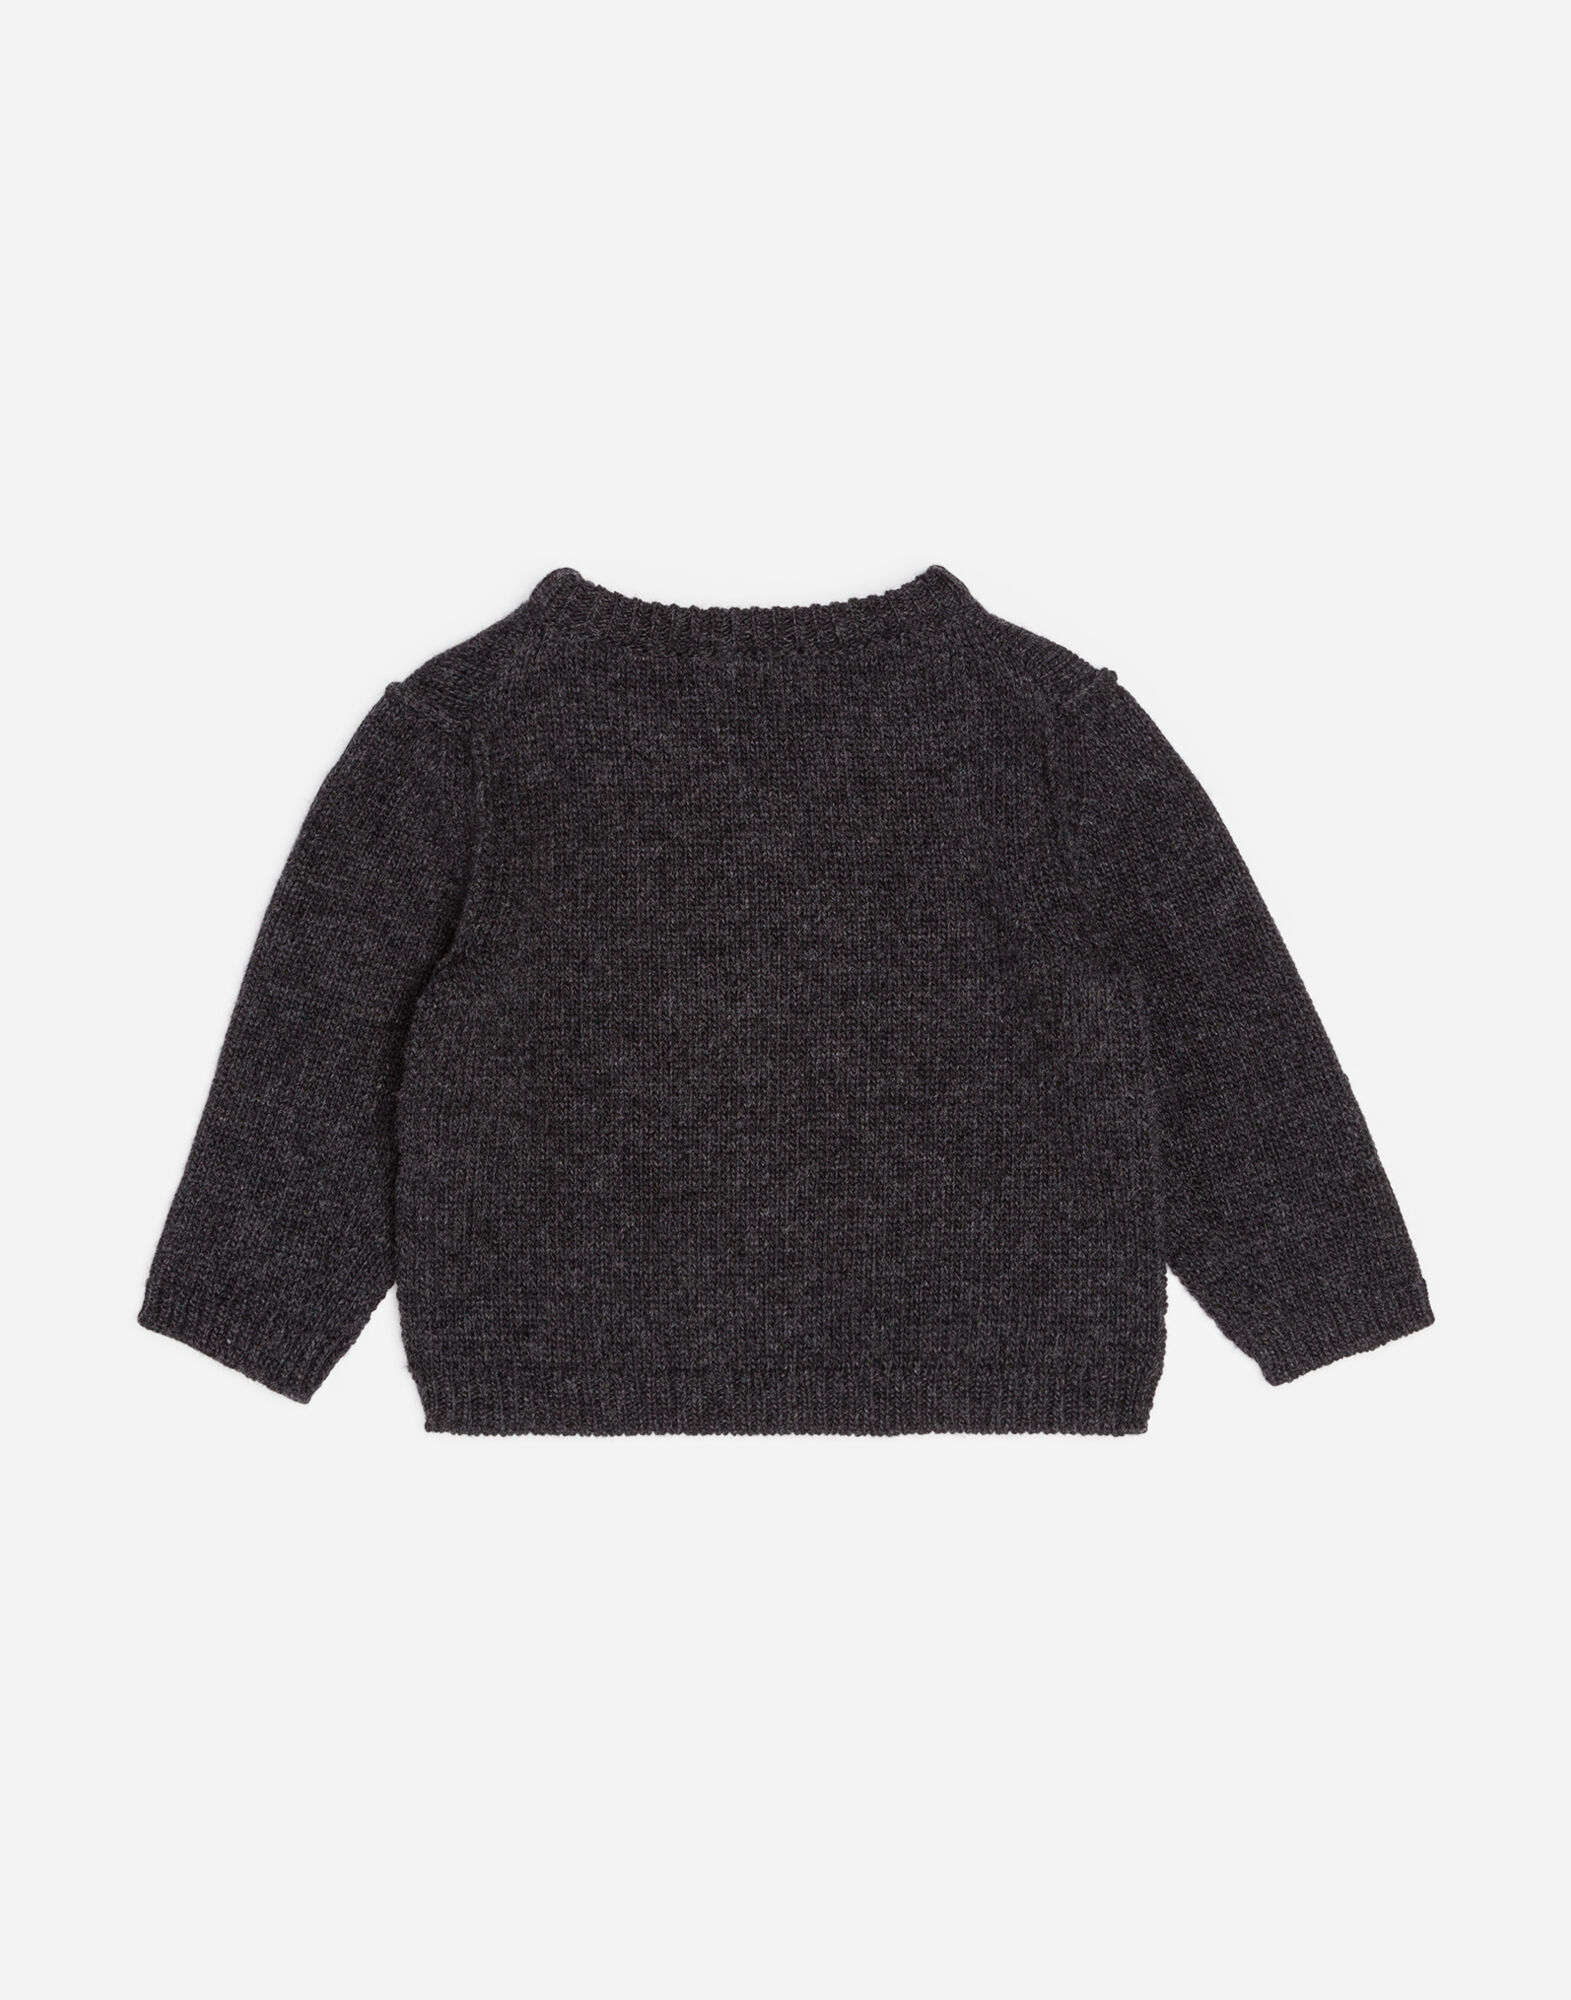 WOOL KNIT WITH EMBROIDERY